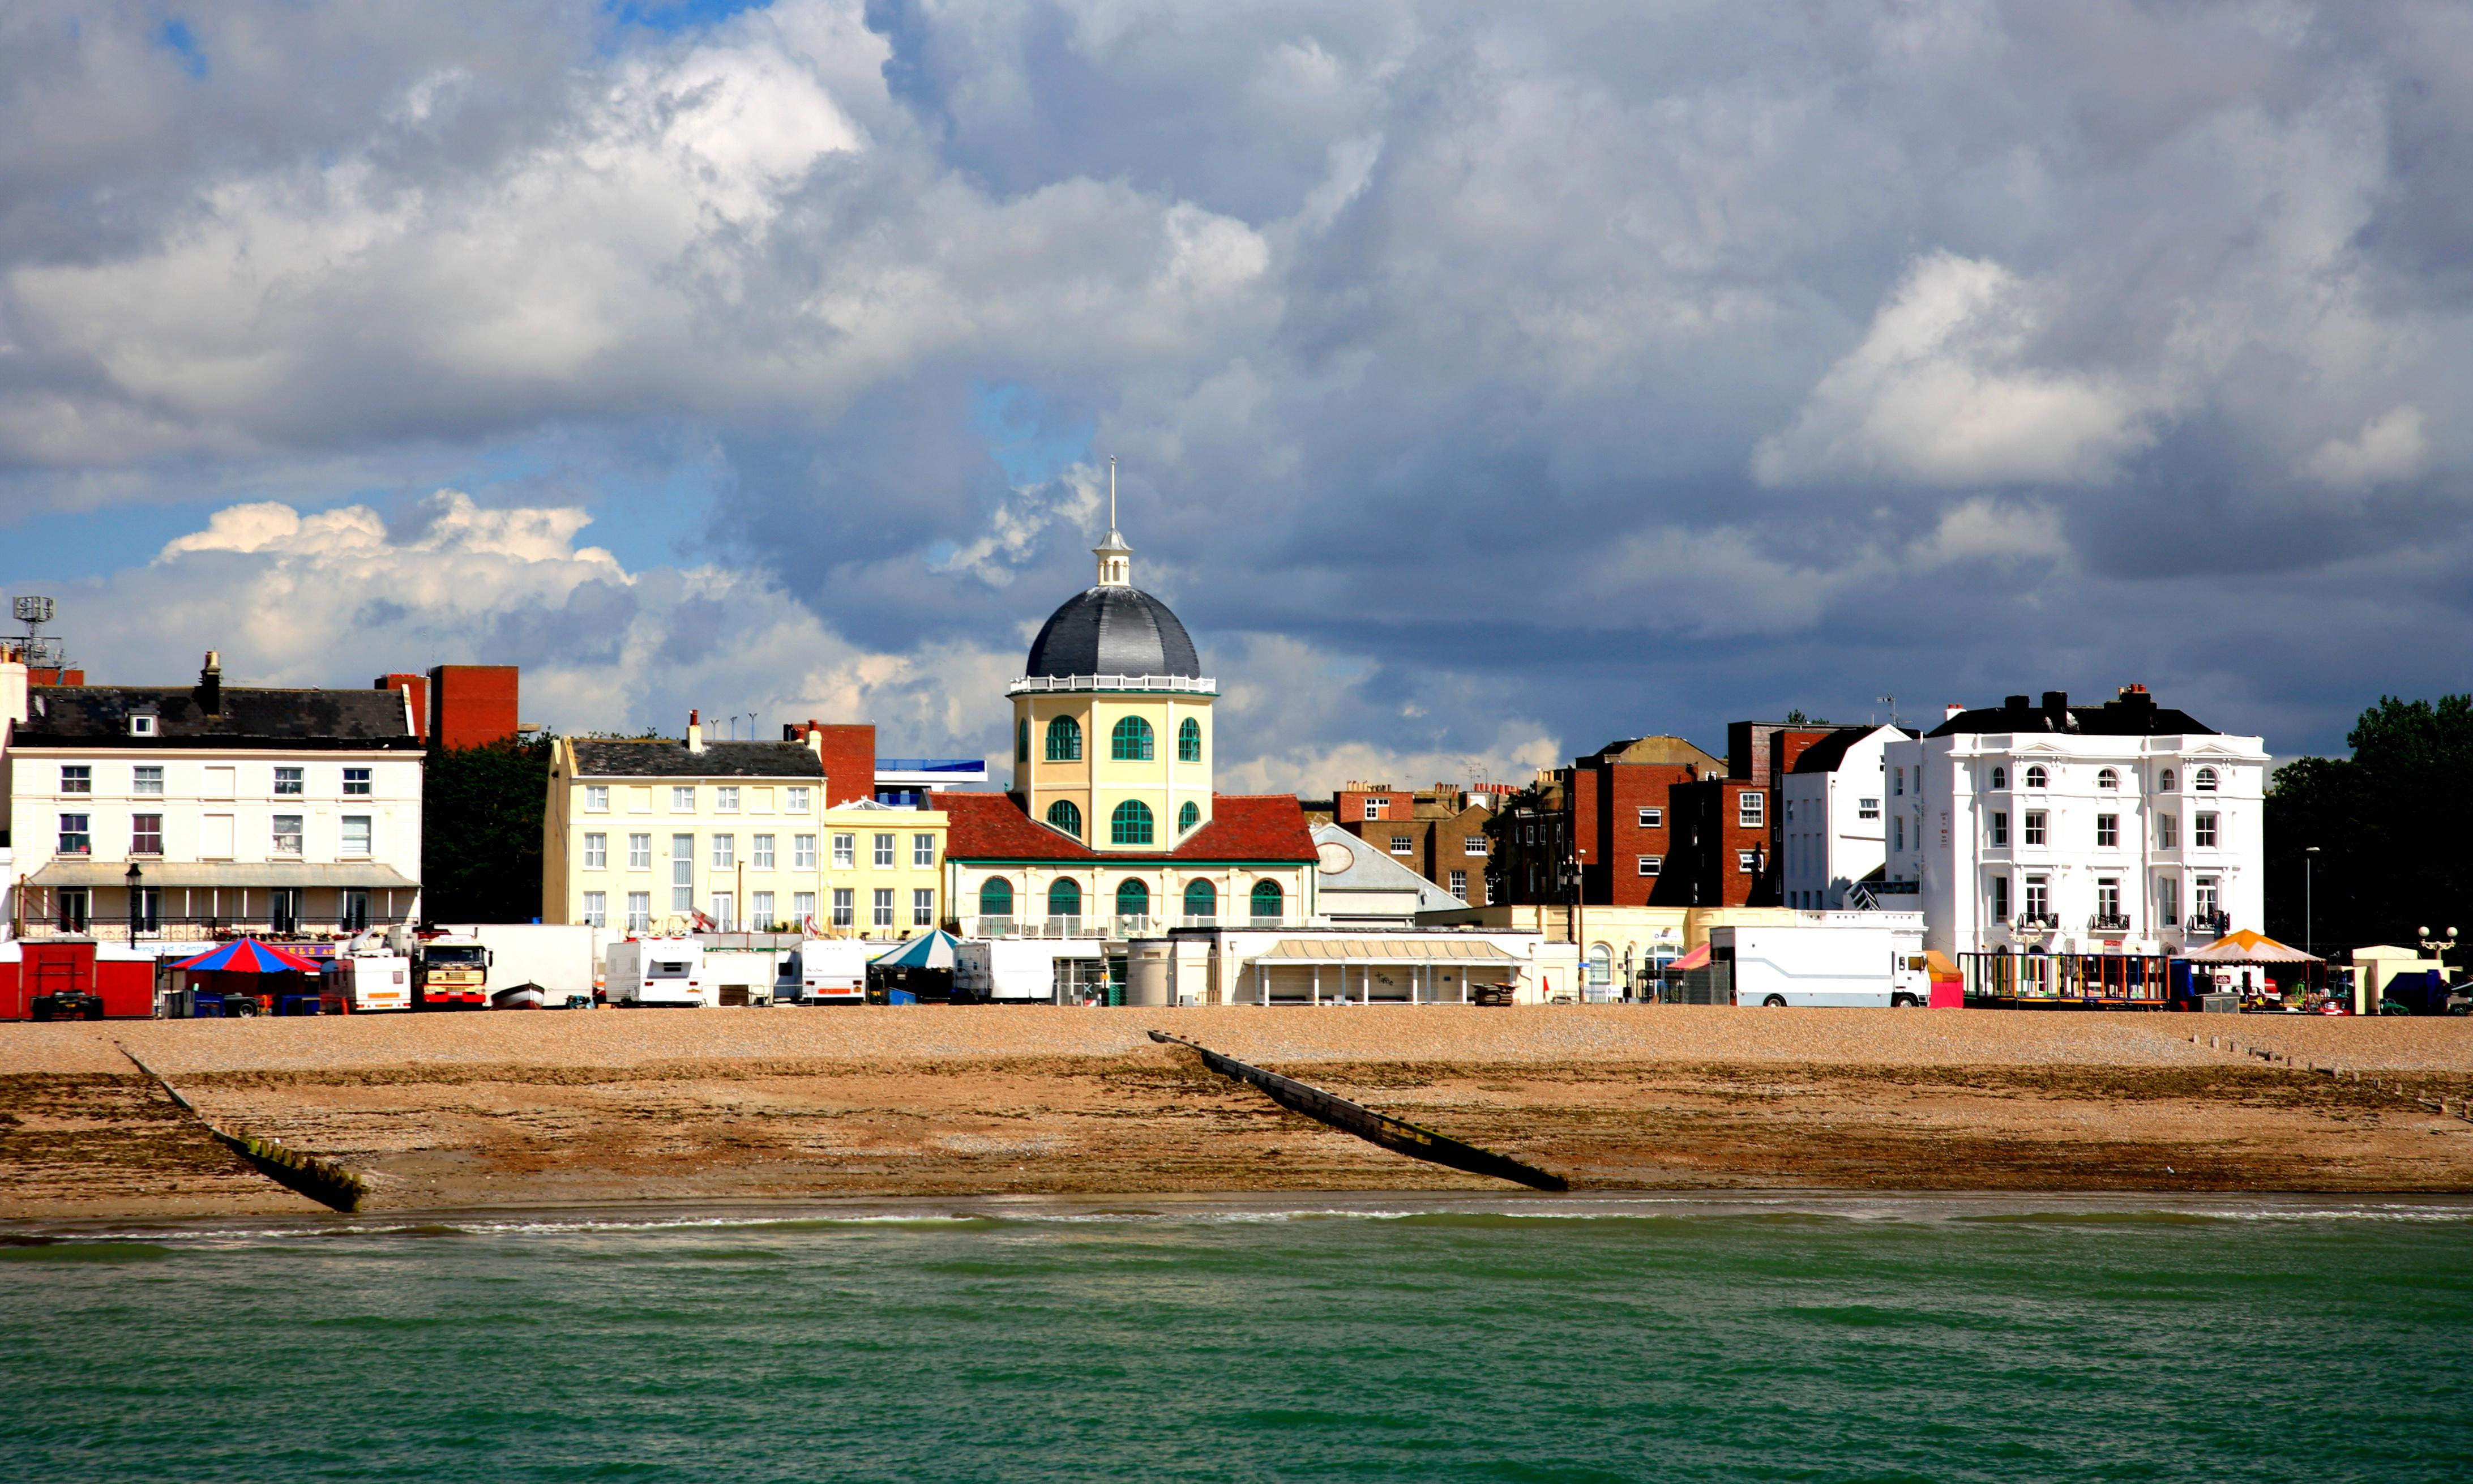 Chemical incident at Worthing pier leaves people vomiting